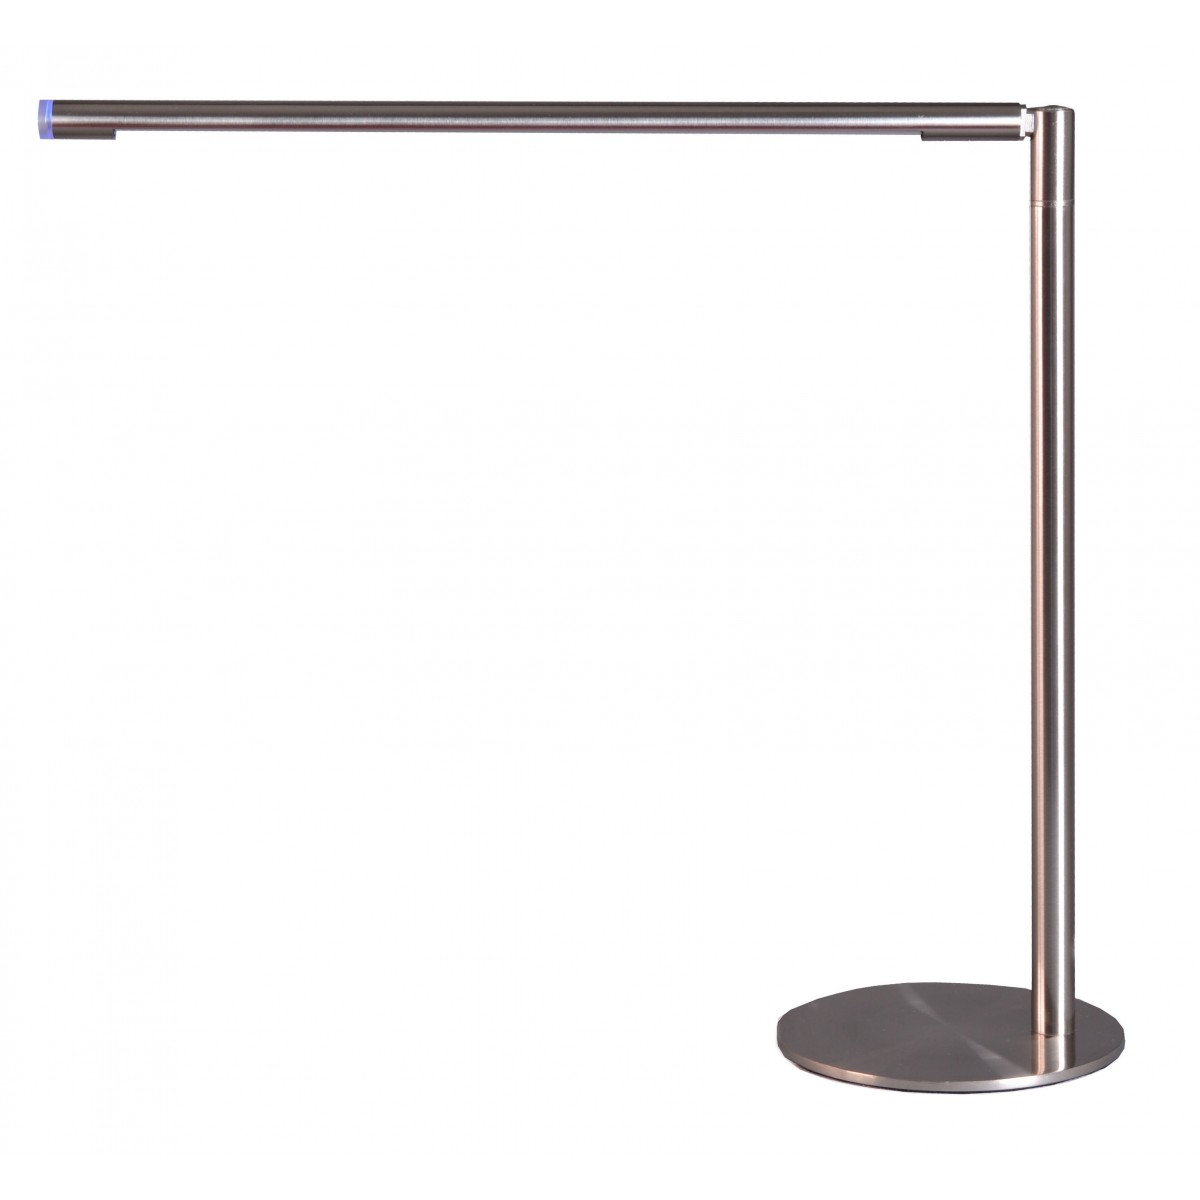 toronto design desk lamp aluminium table light toronto design desk lamp aluminium table light